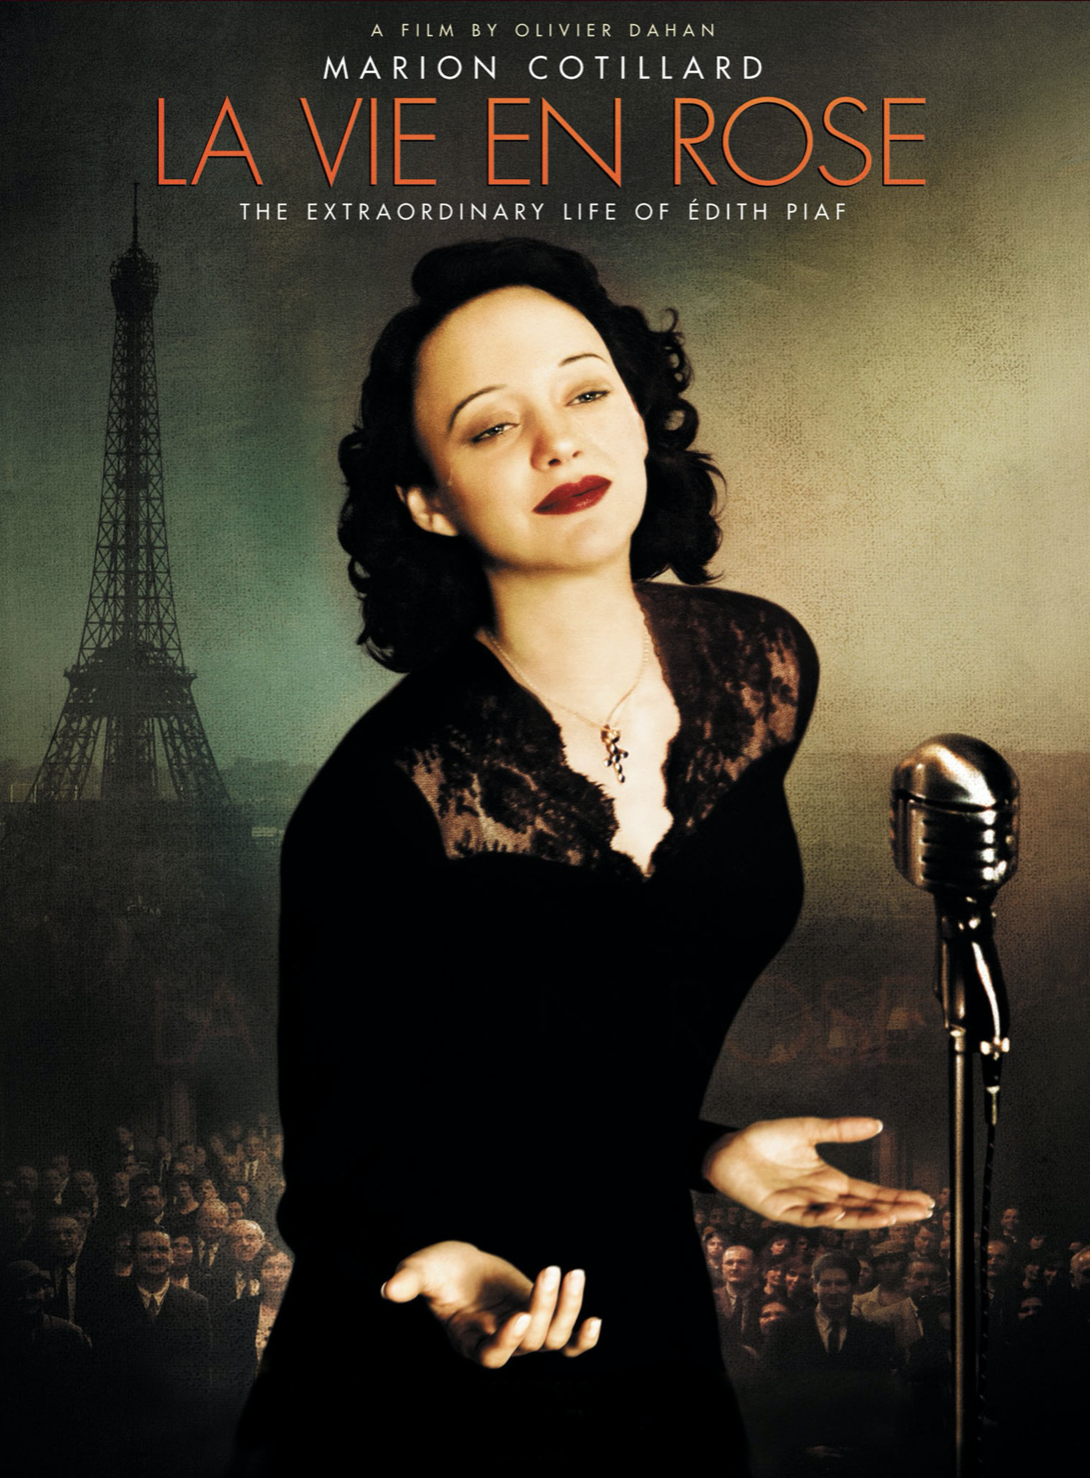 movies on France, French blog, France blog, Paris blog, Edith Piaf, La mome